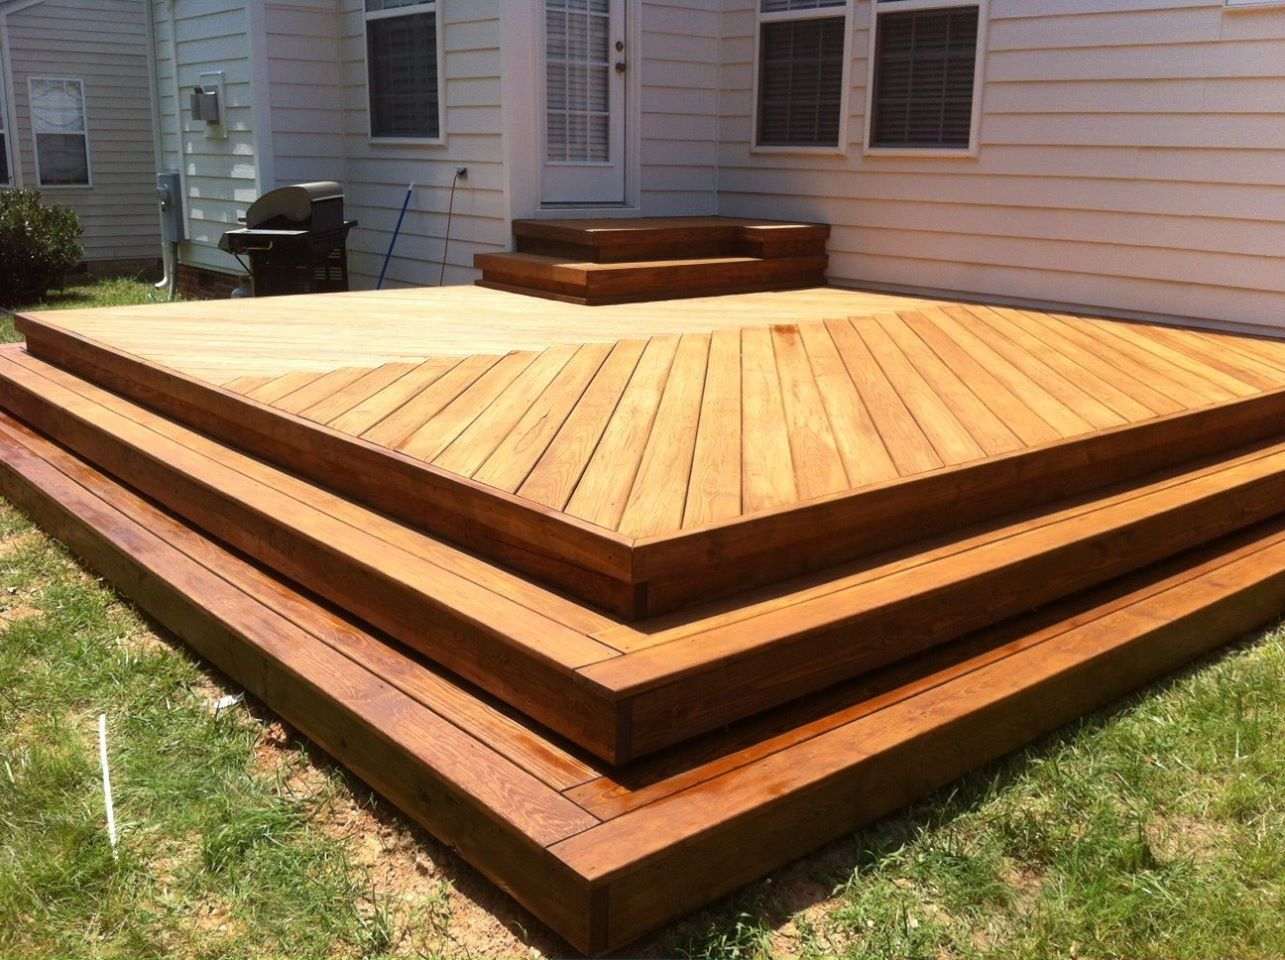 New Deck With Herringbone Decking Pattern No Railing With Wrap Around Steps Patio Deck Designs Diy Deck Deck Designs Backyard